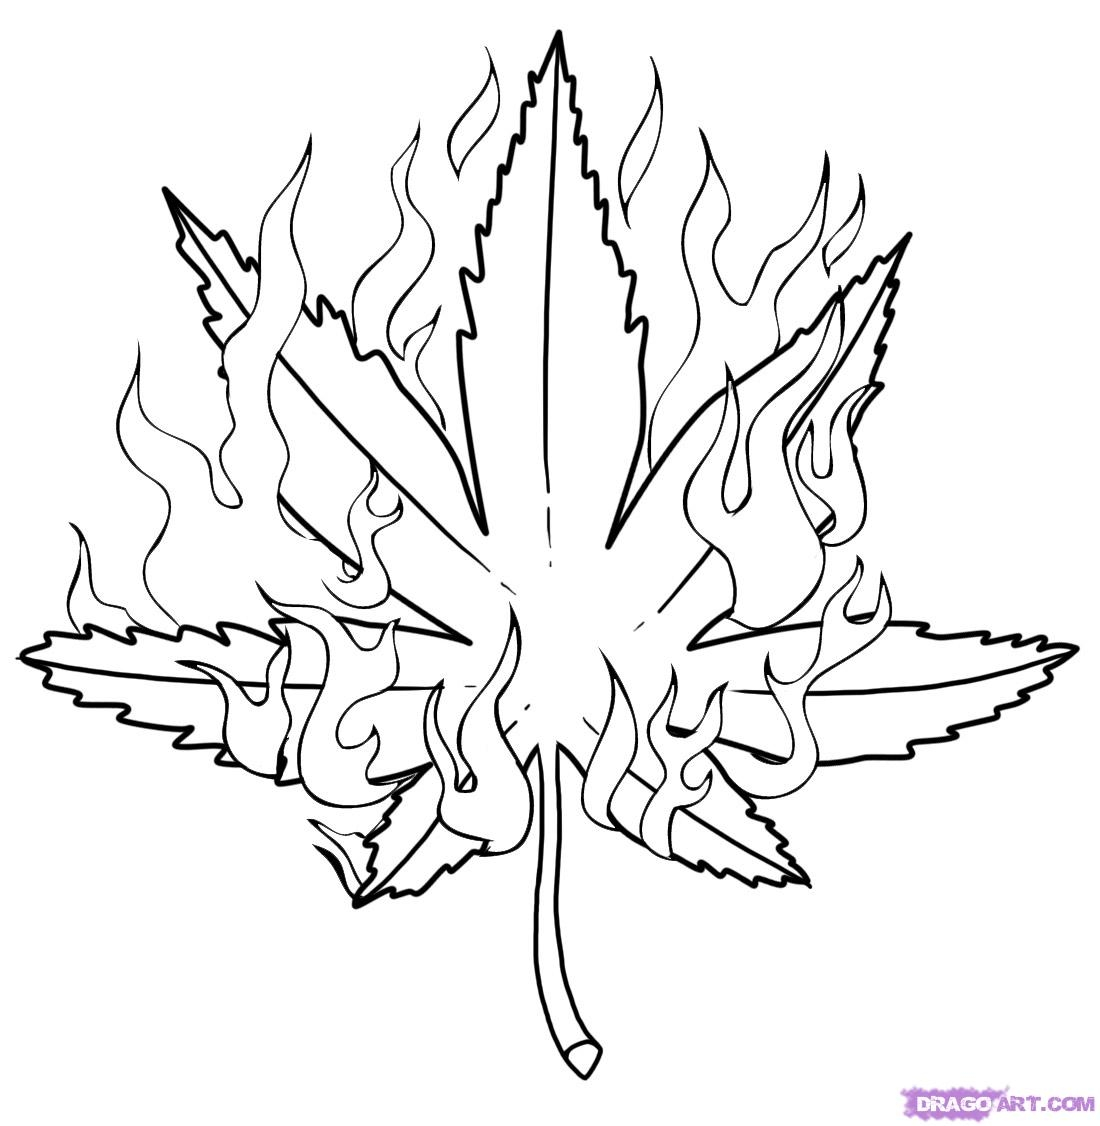 free printable coloring pages for adults - pot leaf coloring page